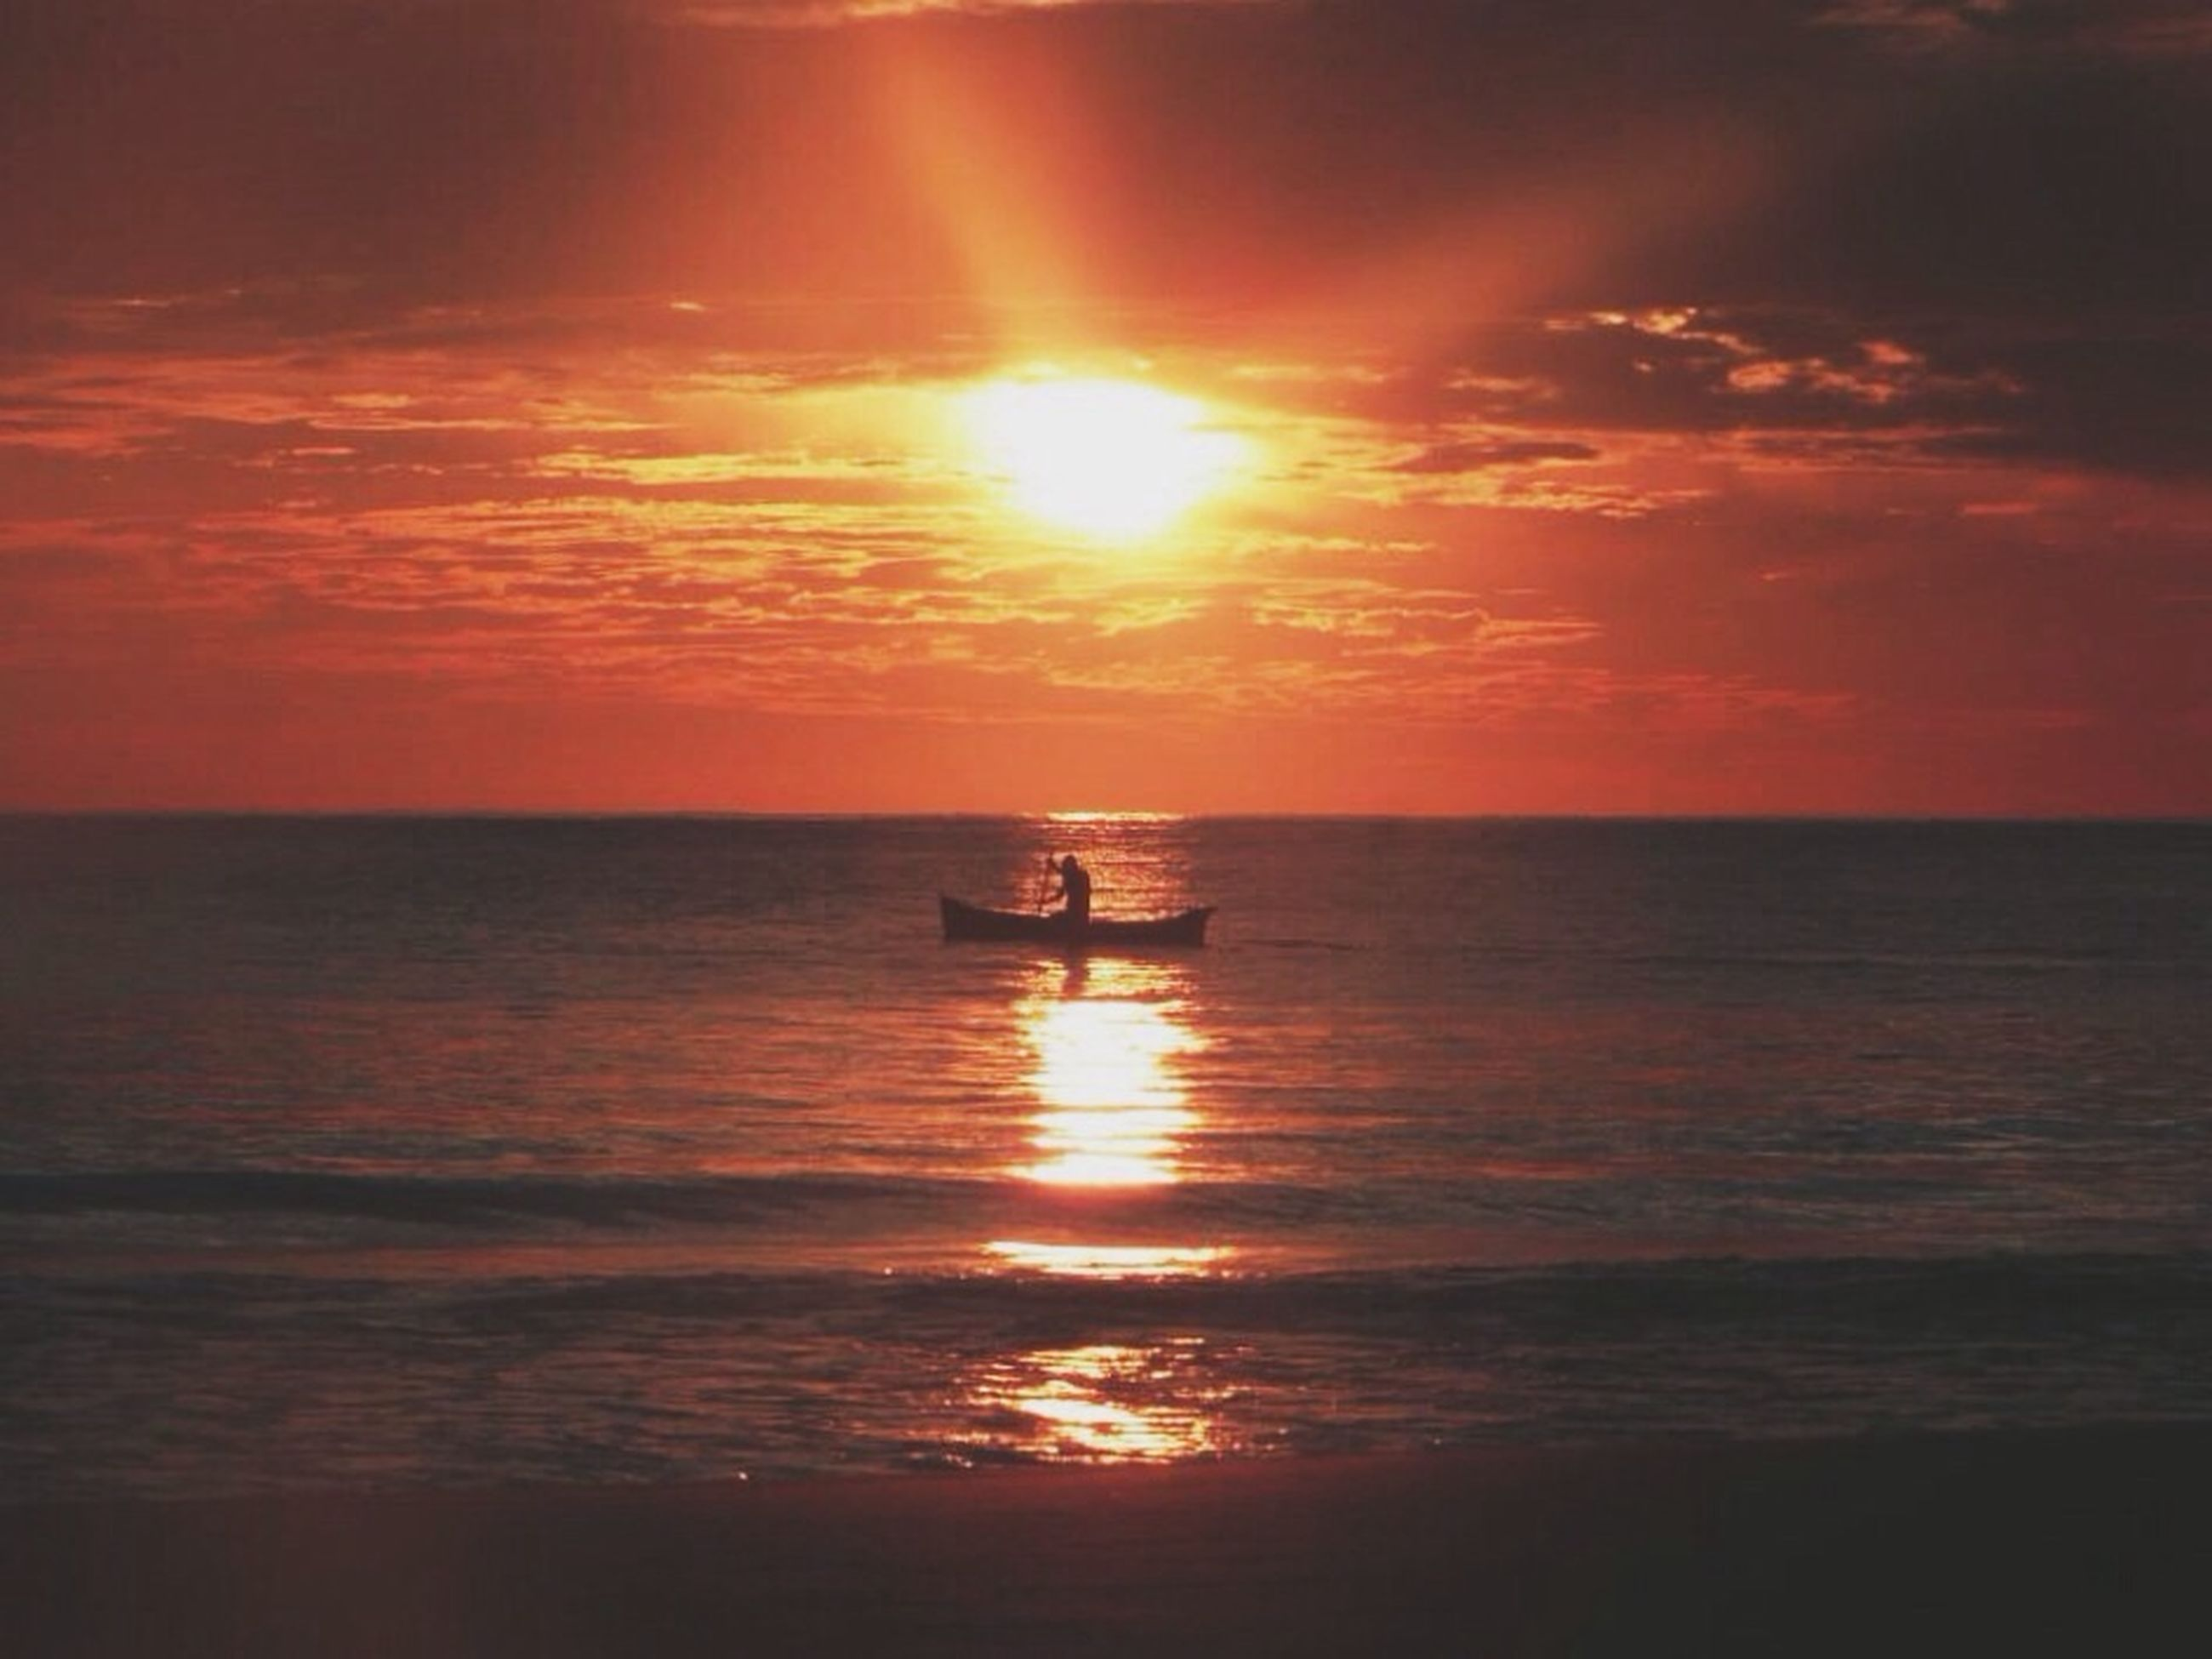 sunset, sea, water, horizon over water, sun, transportation, nautical vessel, scenics, sky, silhouette, orange color, mode of transport, beauty in nature, tranquil scene, tranquility, reflection, boat, waterfront, idyllic, nature